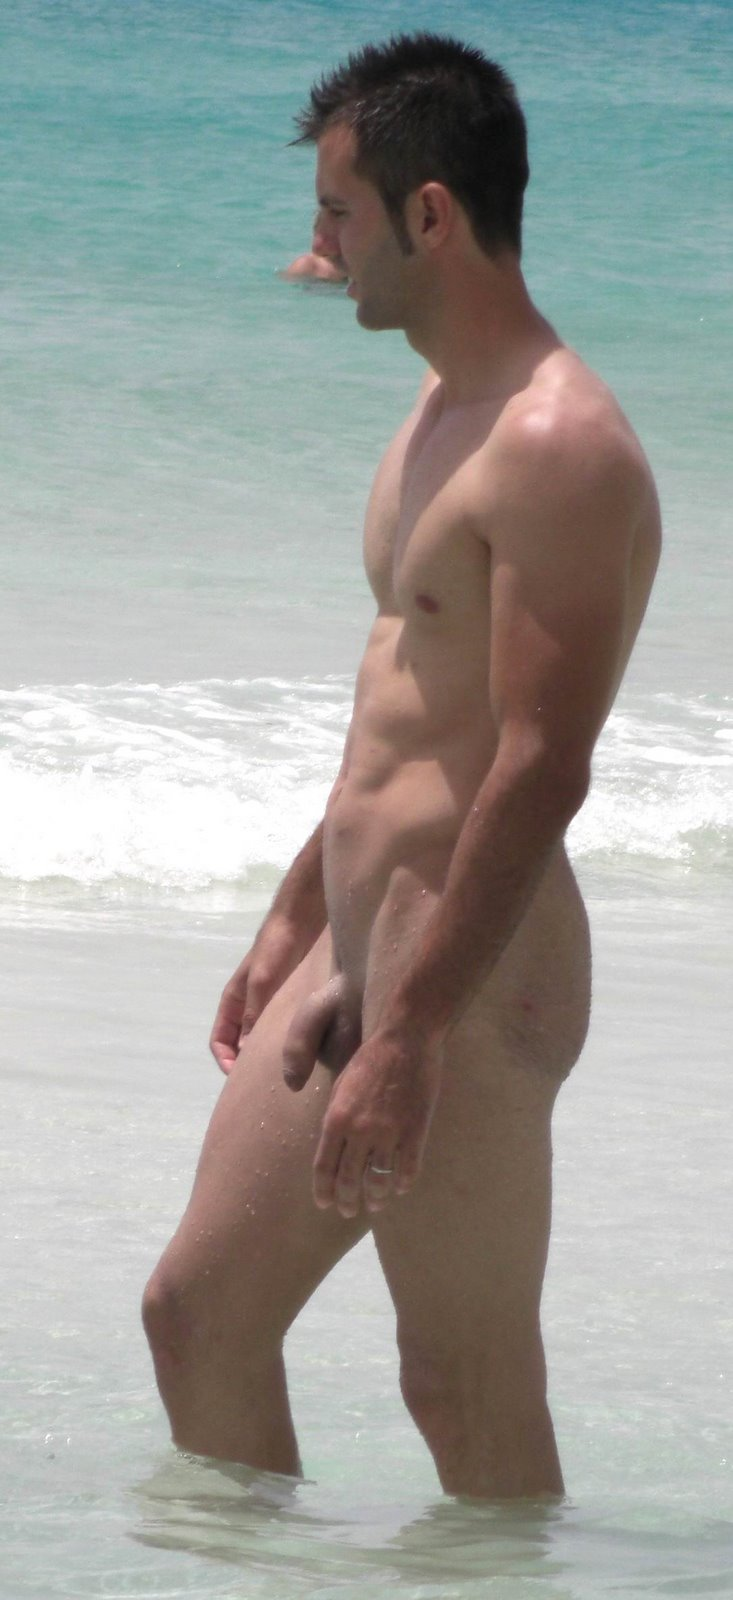 Spy Cam Dude Sexy Guy Naked At The Beach-6036